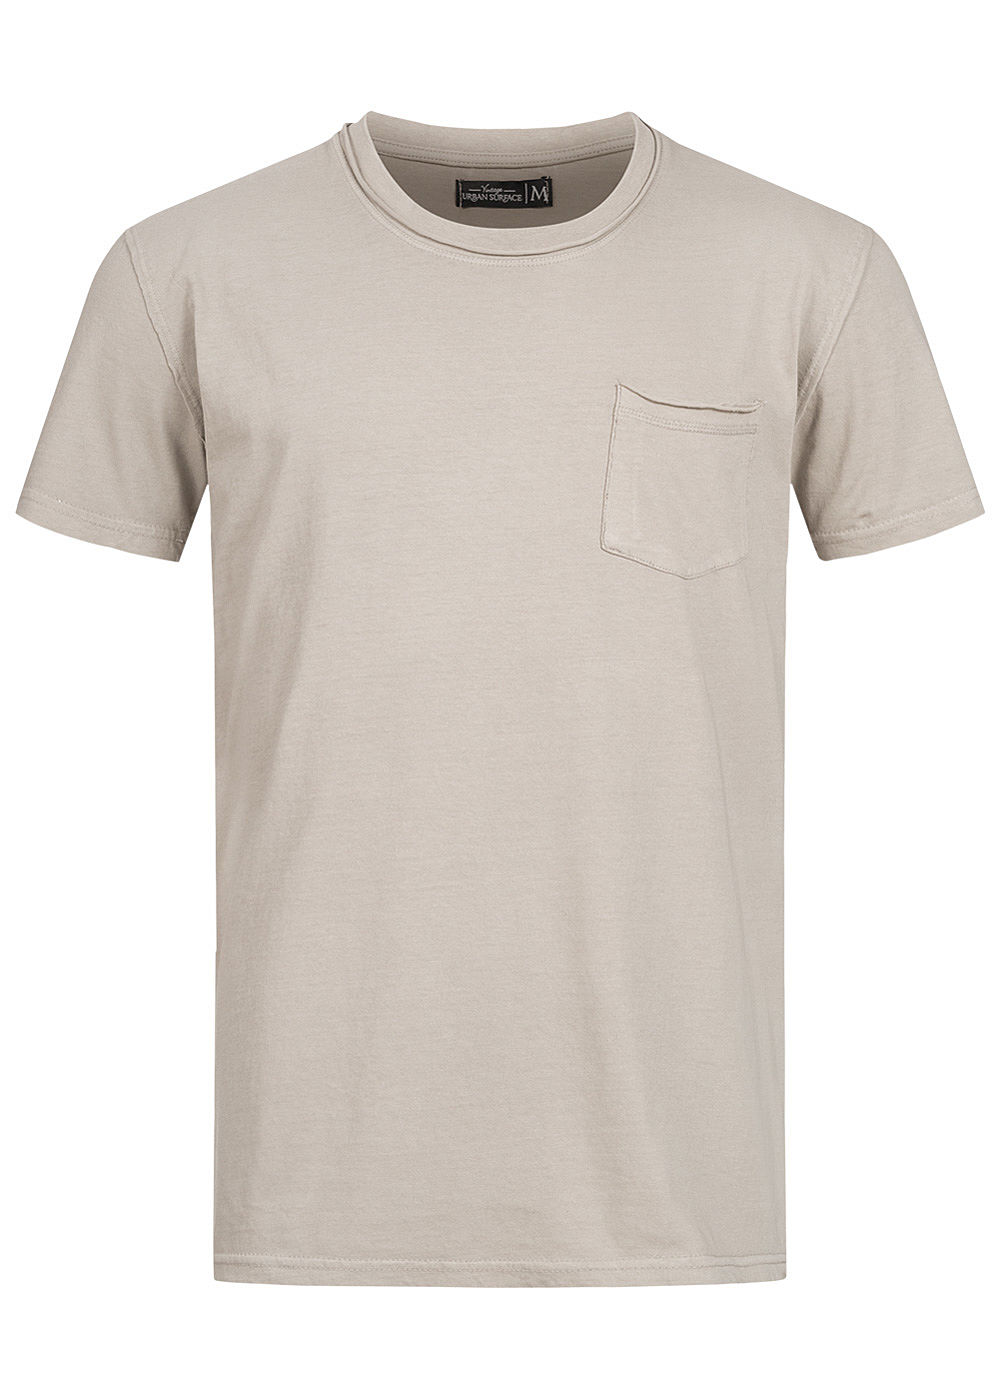 Urban Surface Herren T-Shirt offene Nähte Brusttasche string beige - Art.-Nr.: 20084046